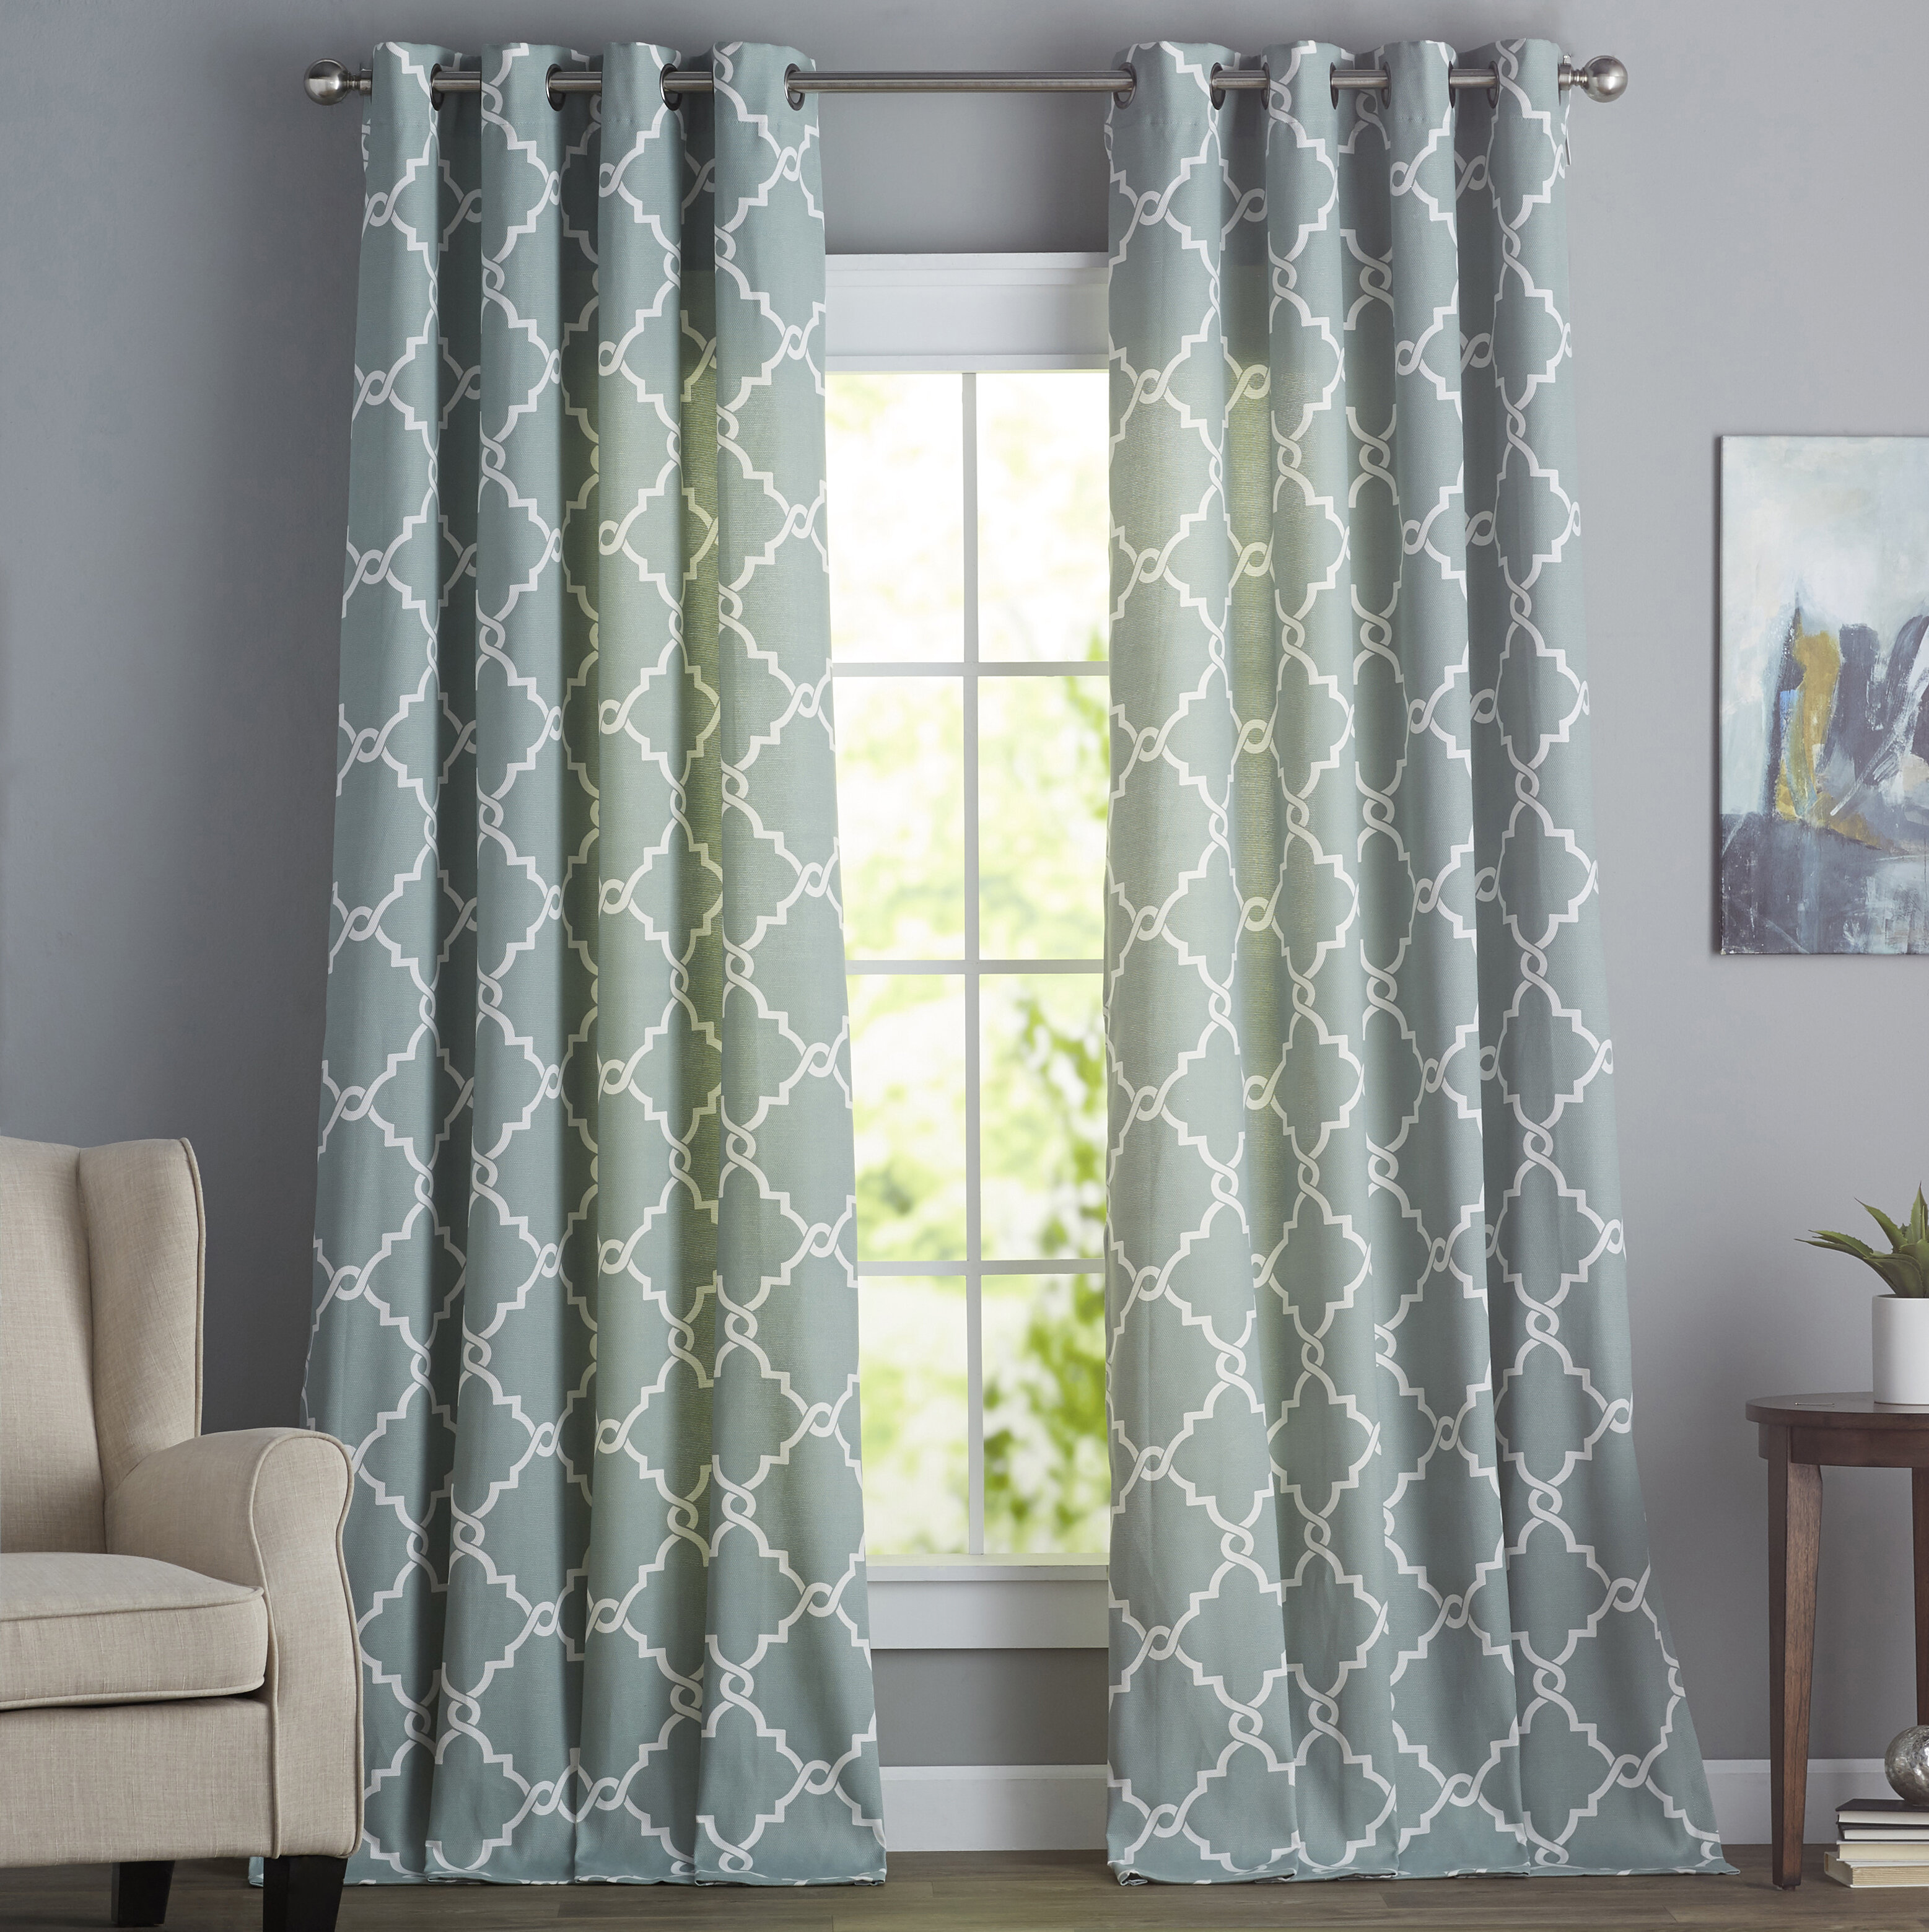 walmart insulated fancy ideas engaging picture blue panels achim at grommet curtain gingham curtains panel com shower sheer blackout rainbow